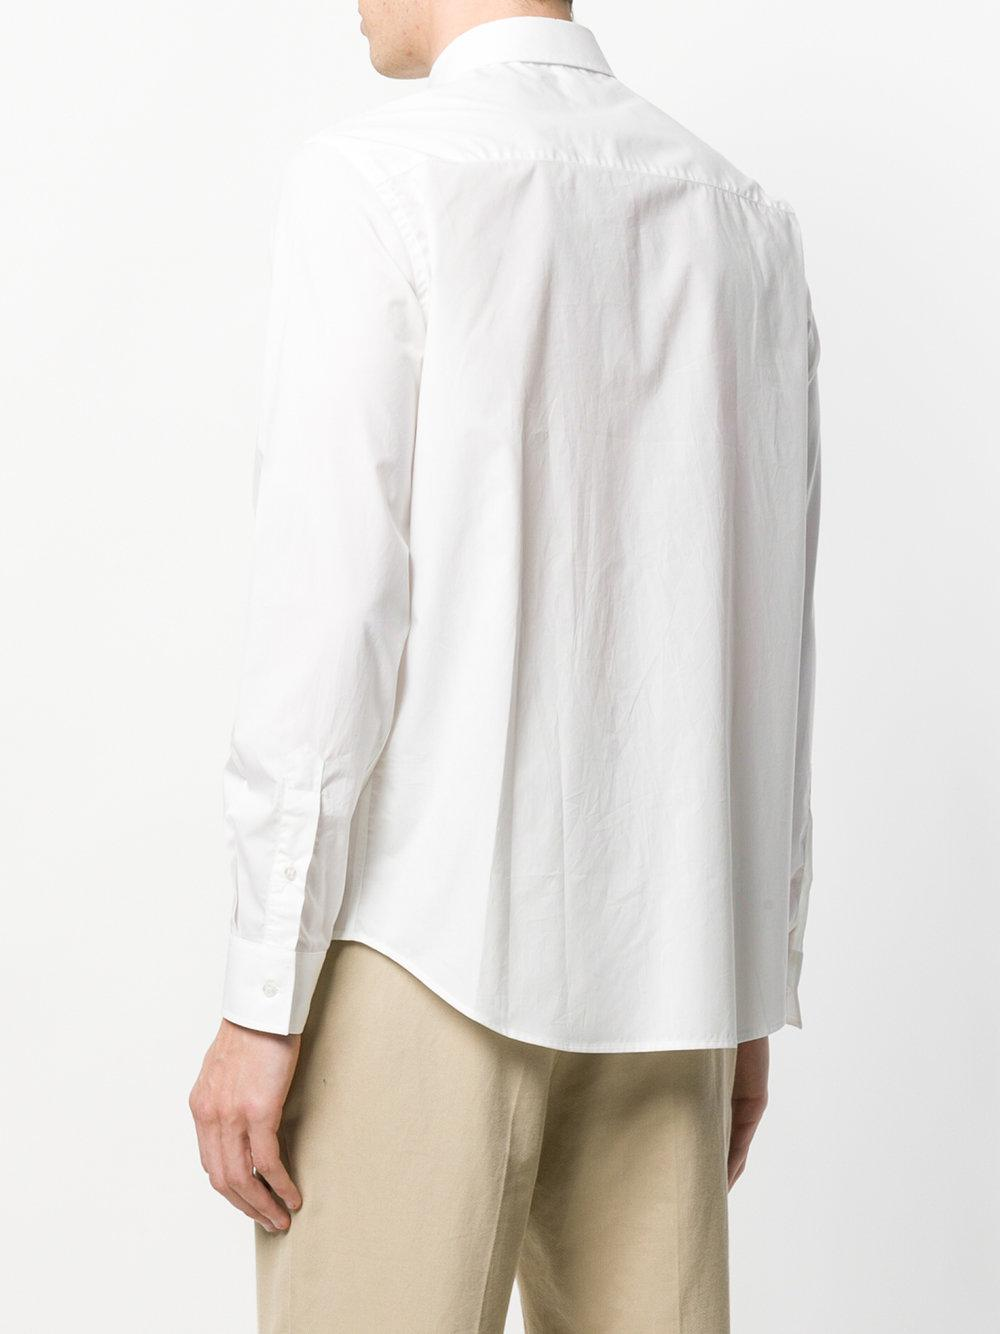 MSGM Cotton Long Sleeve Shirt in White for Men